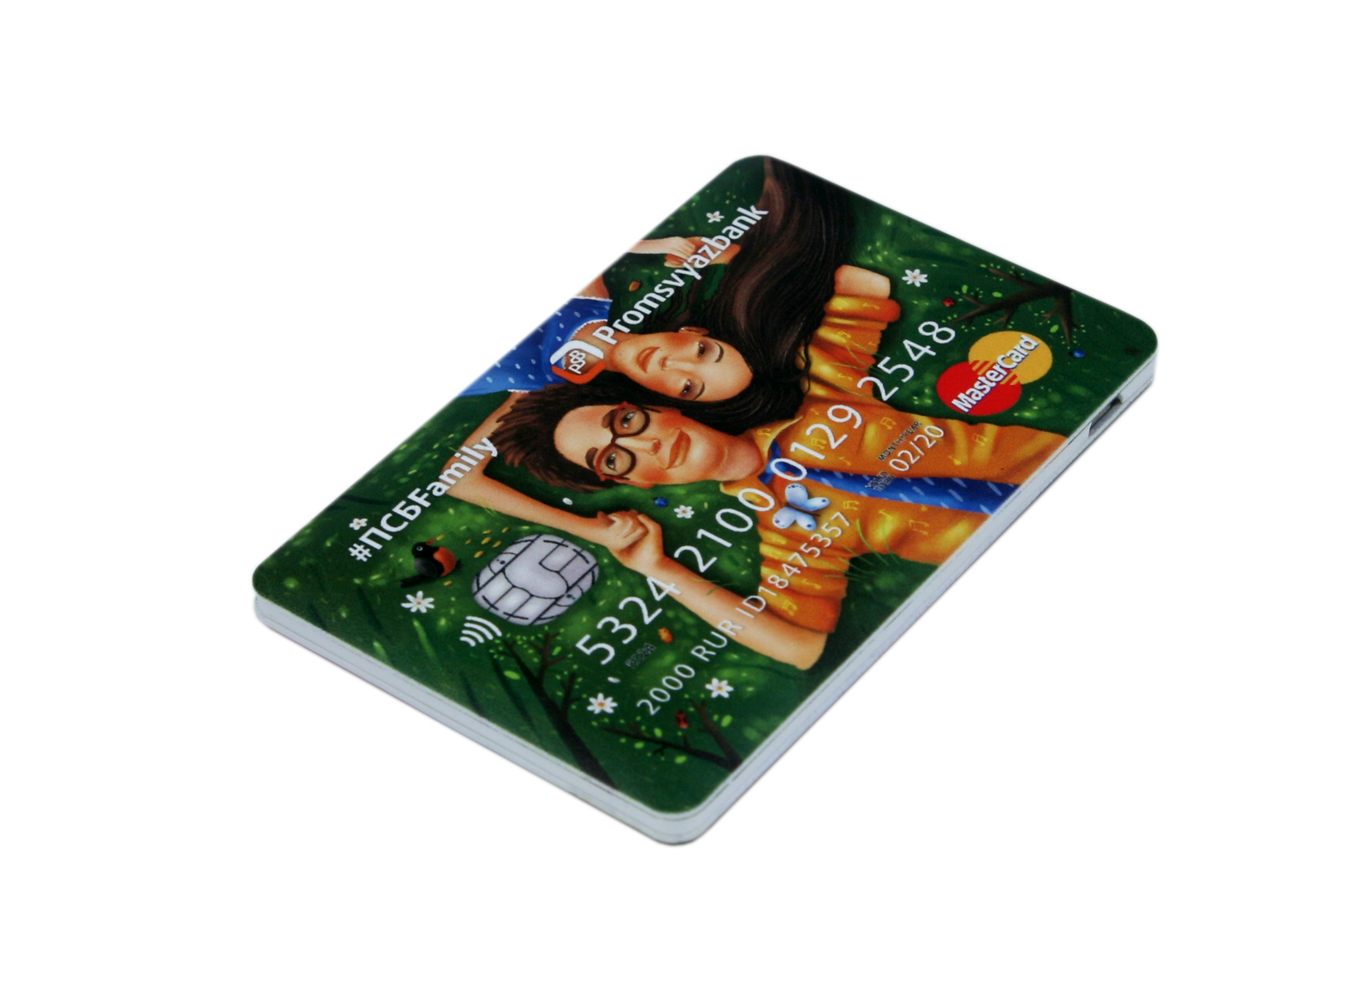 Power Bank Card PB004 под заказ